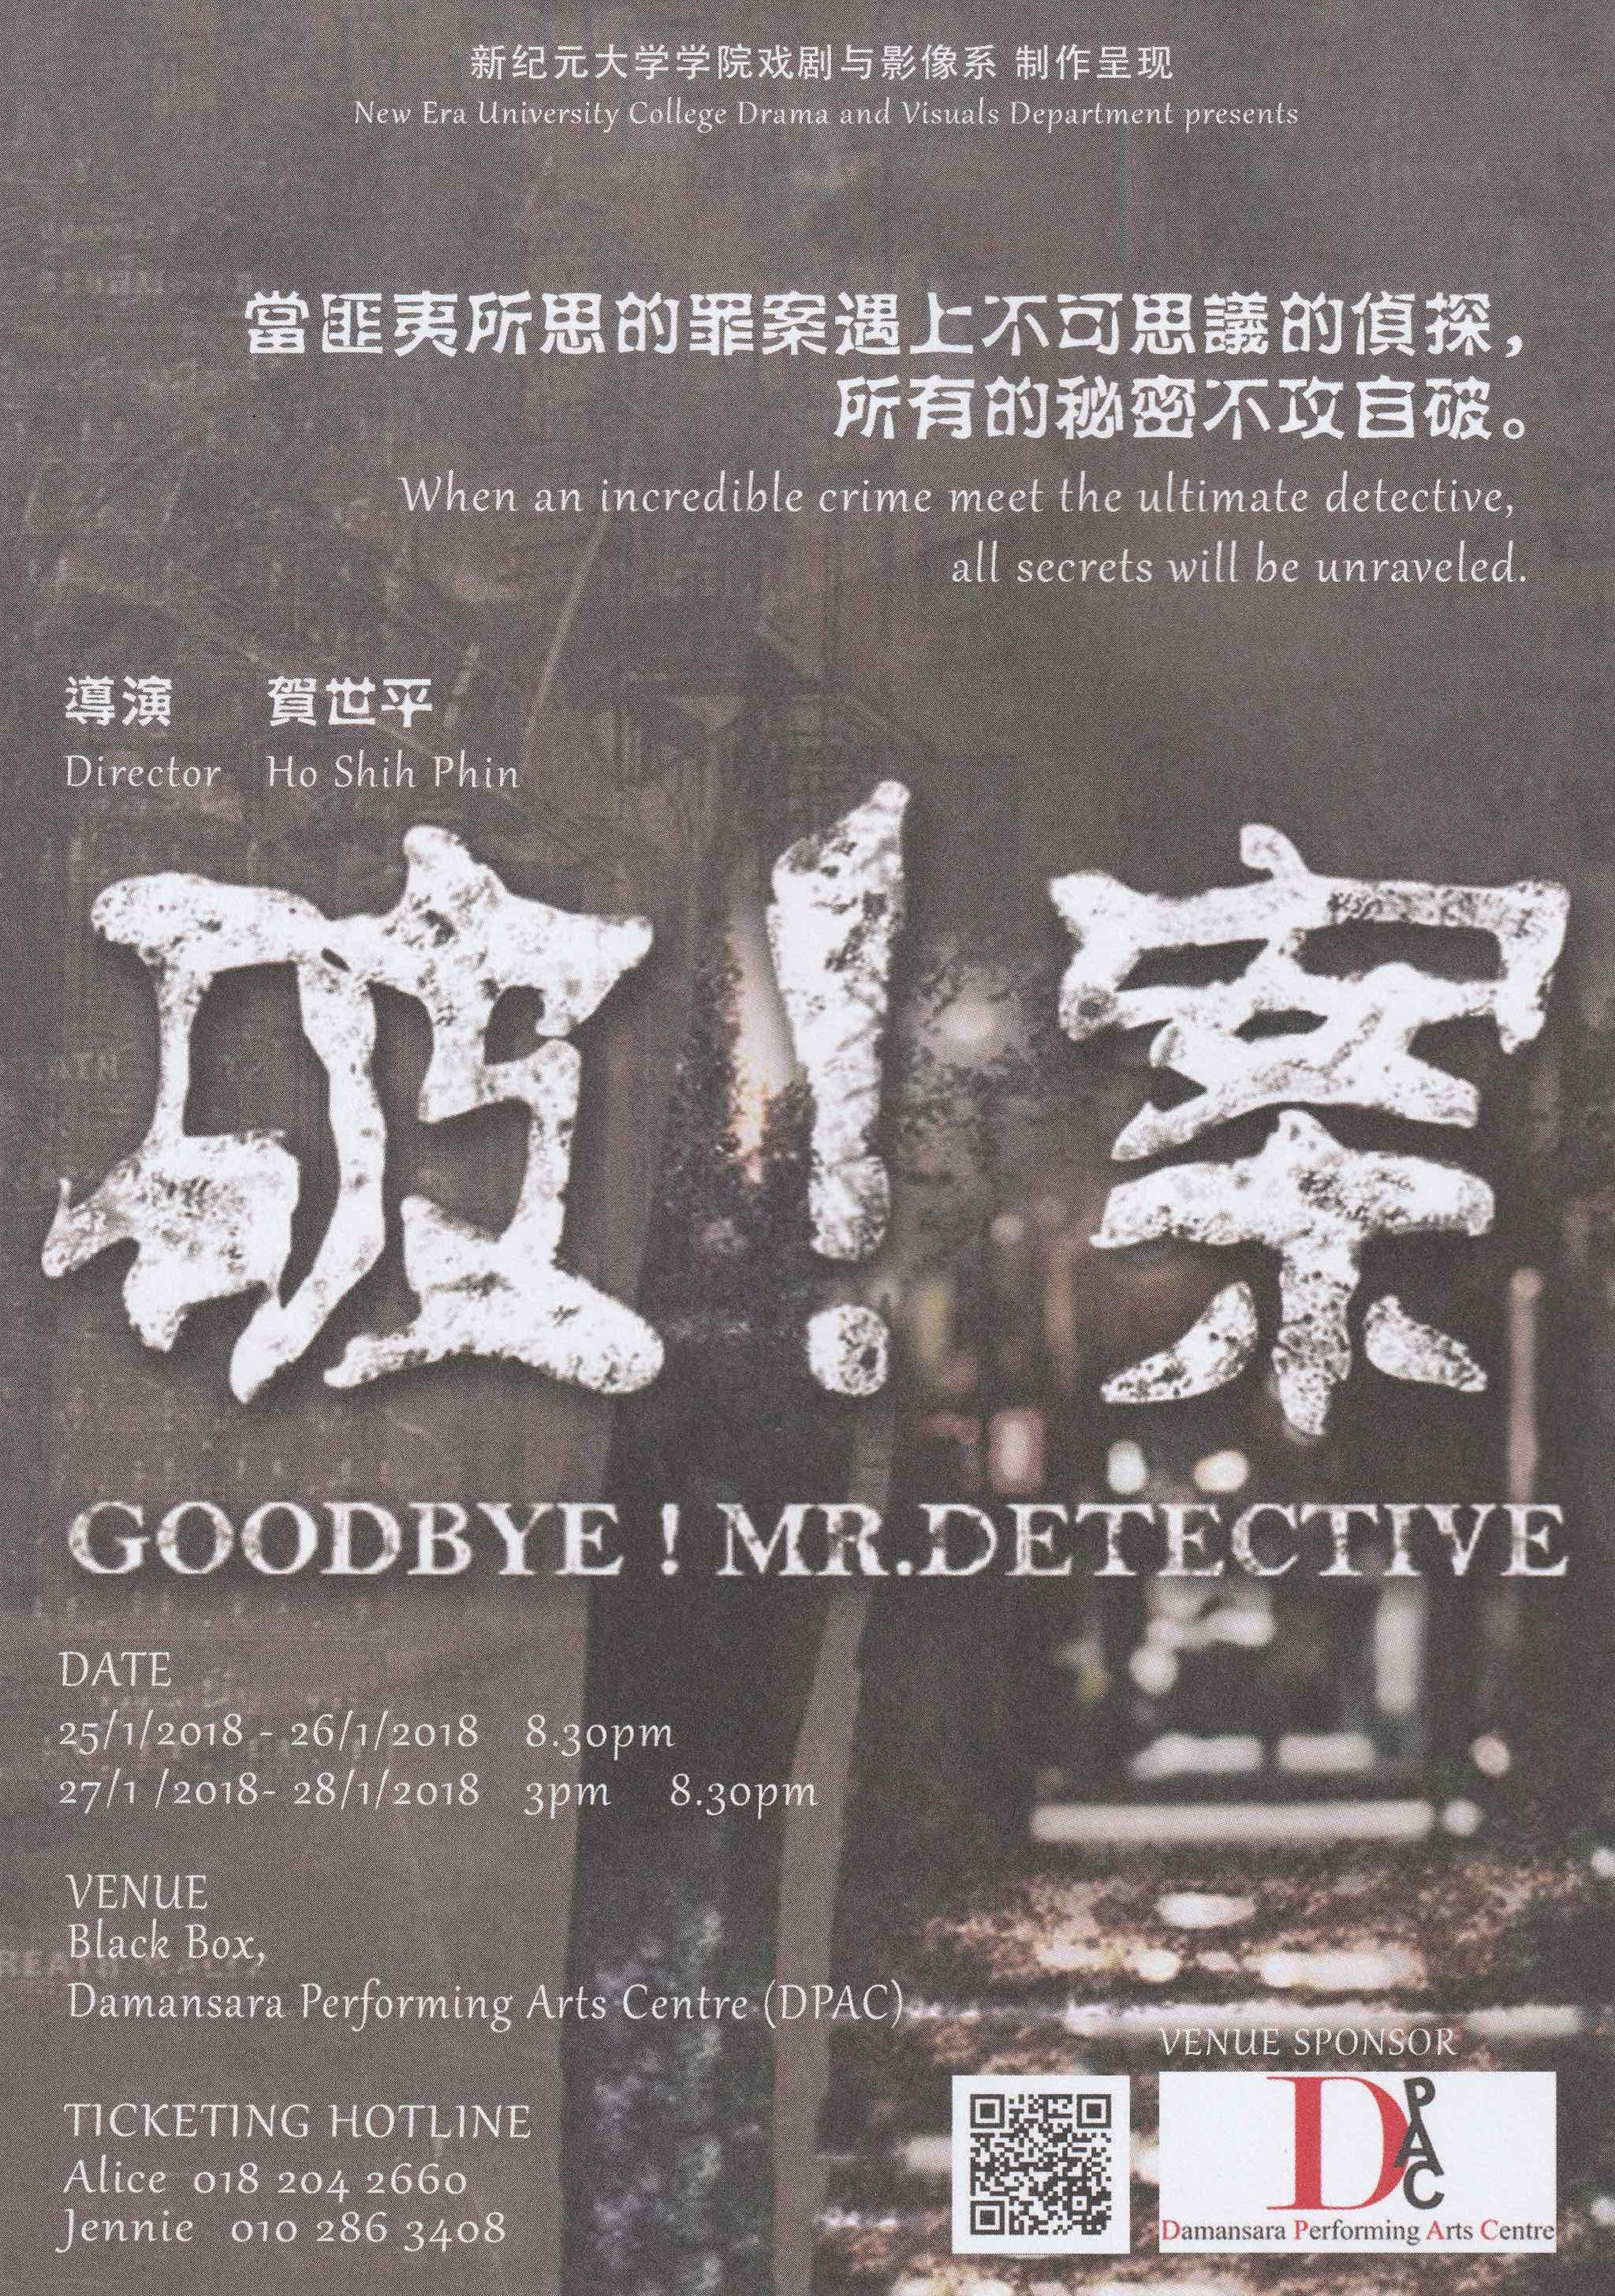 2018 Goodbye! Mr.Detective Flyer 03